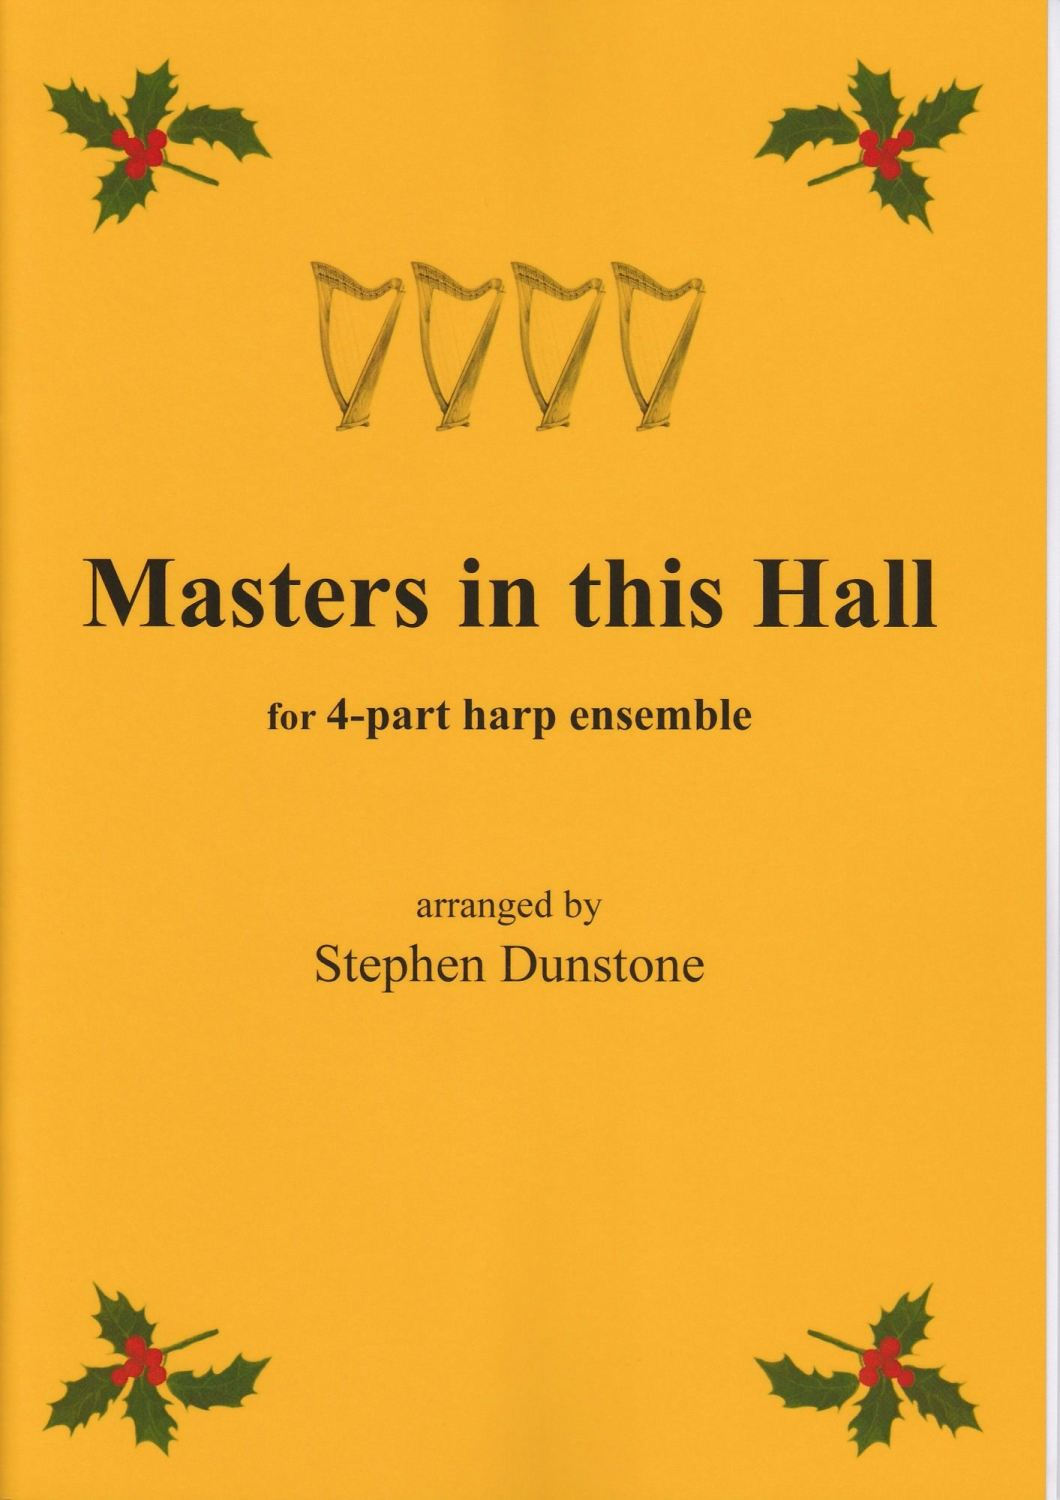 Masters in the Hall - Stephen Dunstone